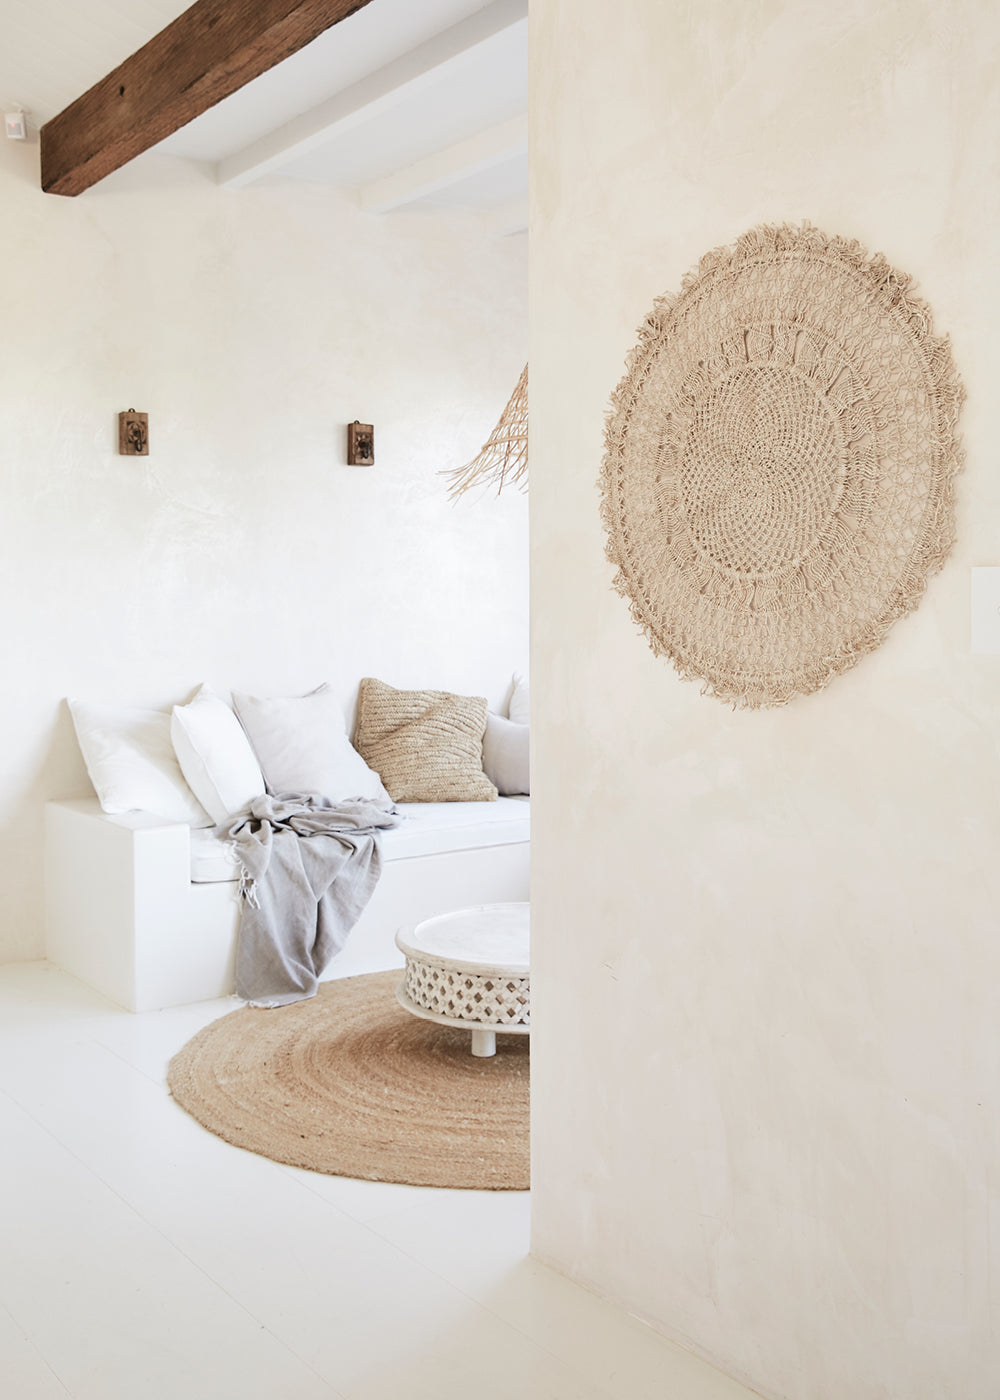 woven wall hanging - round handwoven mandala wall hanging on plain white wall with sofa and cushions in the background.